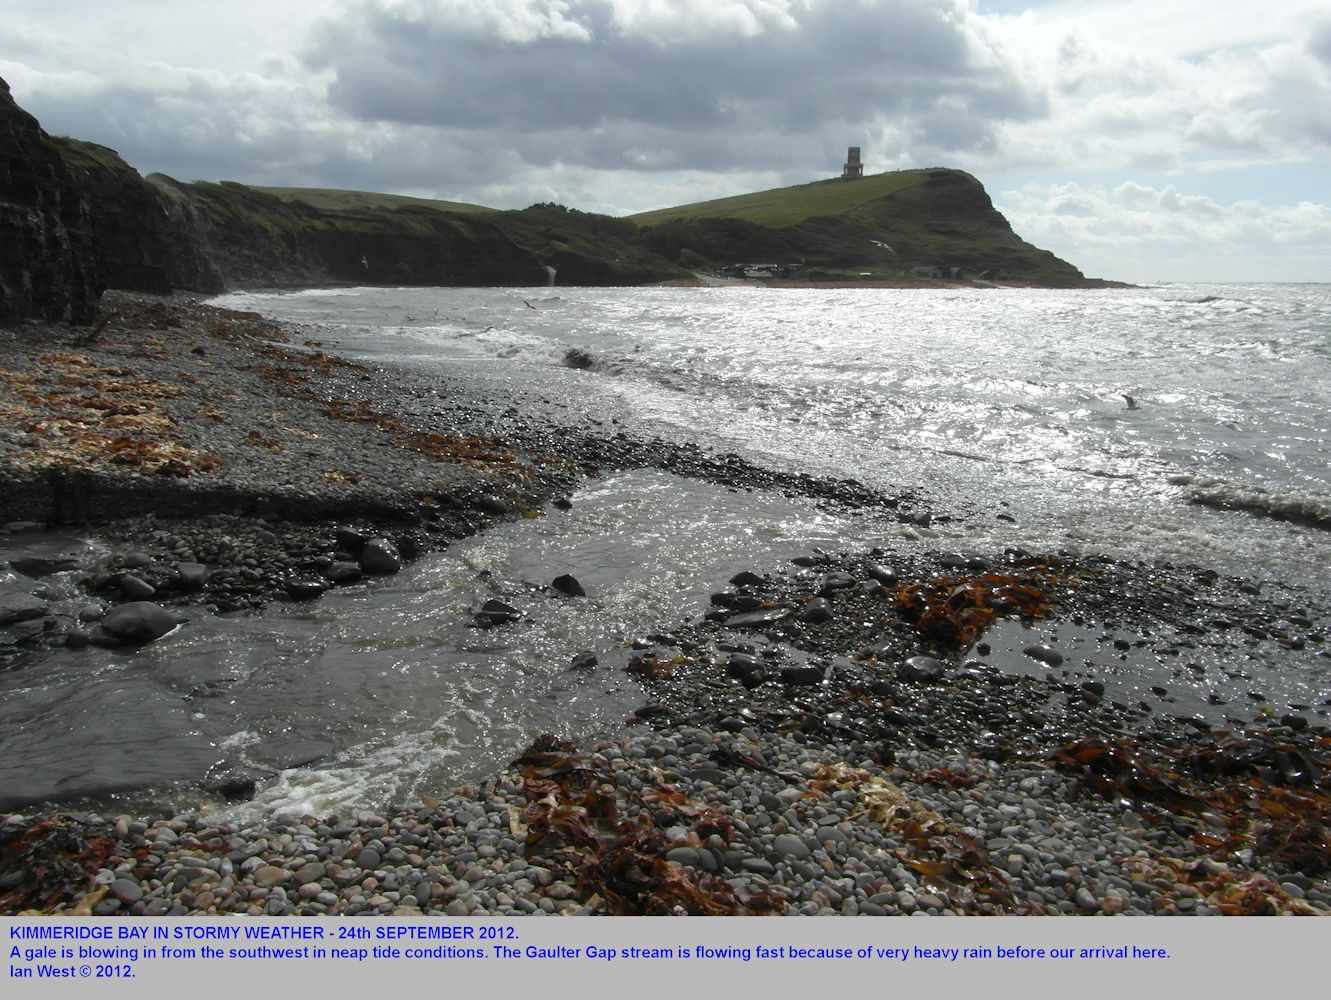 Kimmeridge Bay, Dorset, in a southwesterly gale, 24th September 2012